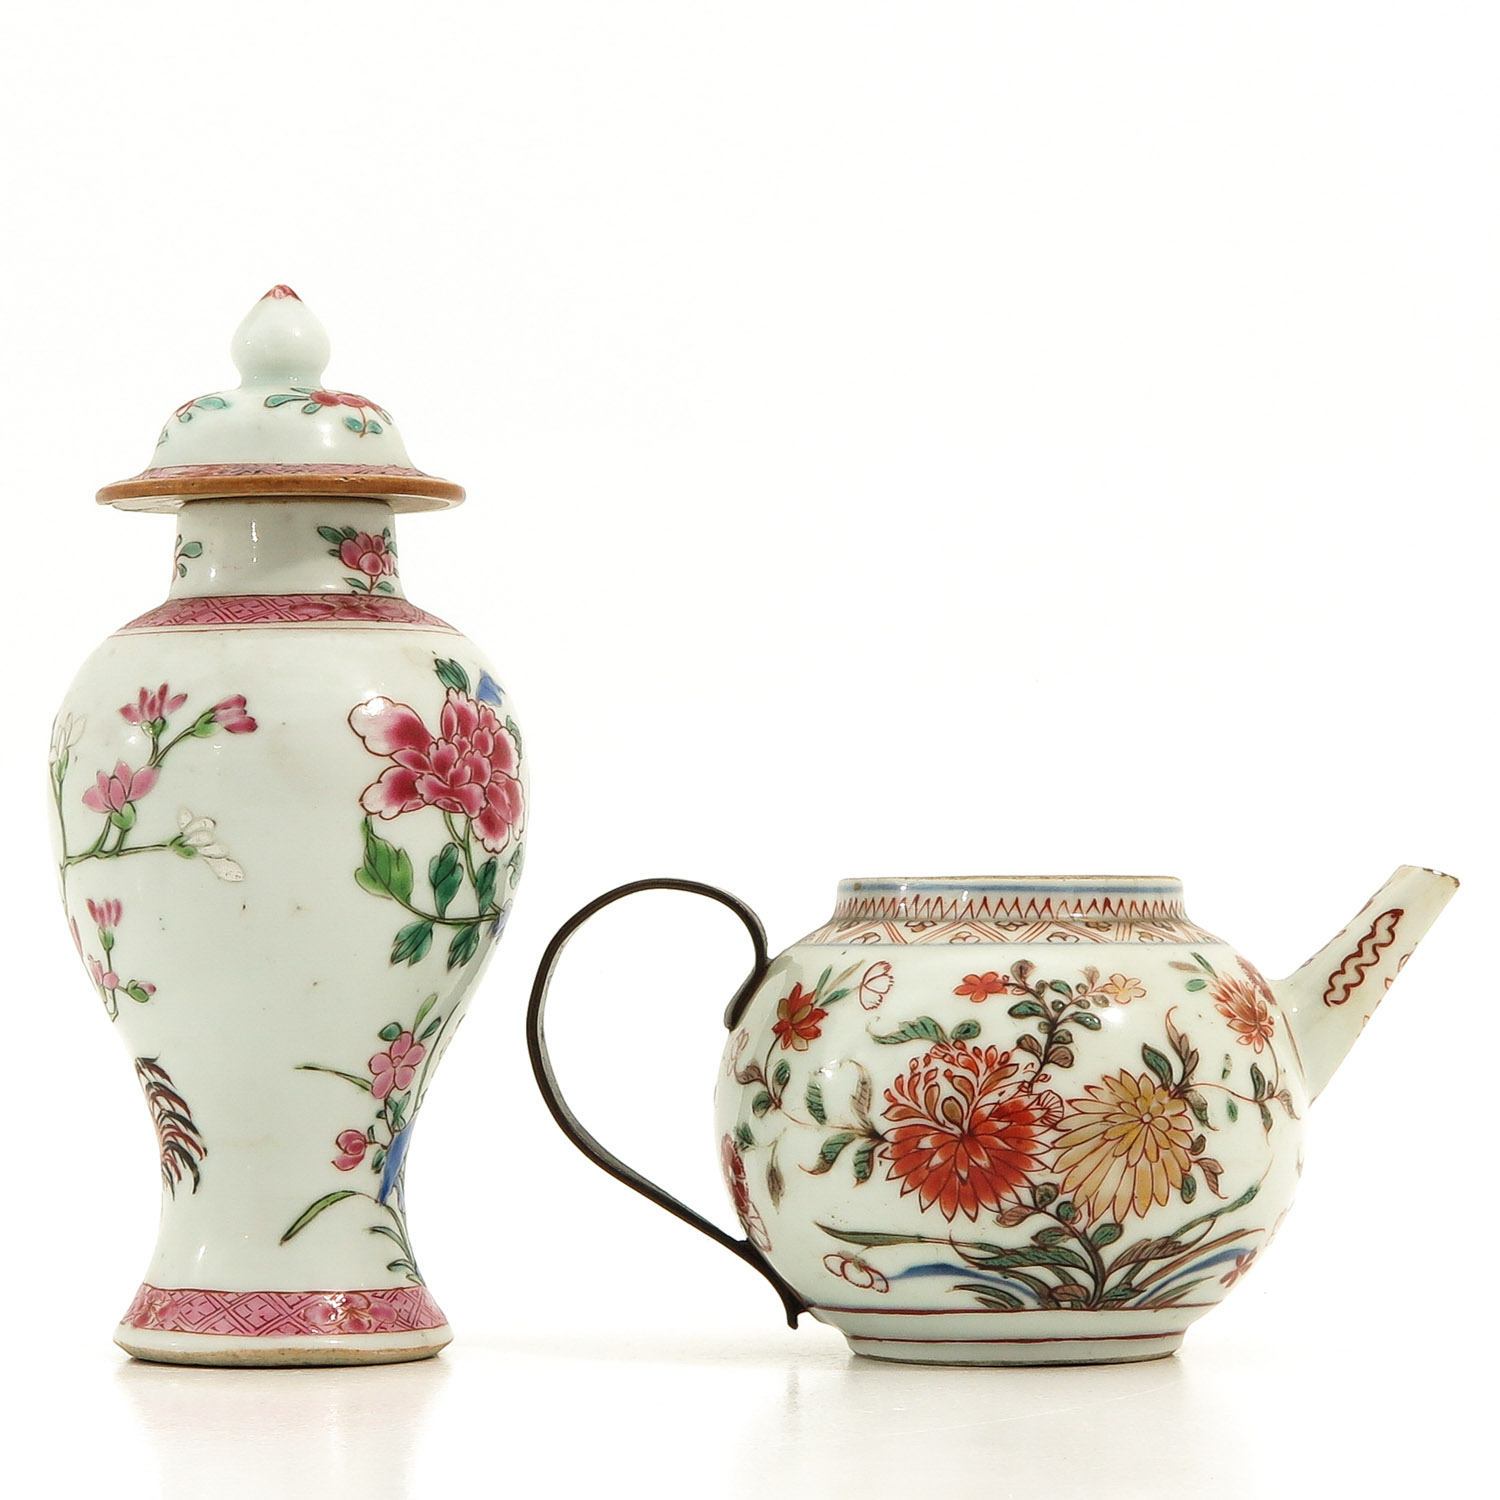 A Famille Rose Vase and Teapot - Image 3 of 9